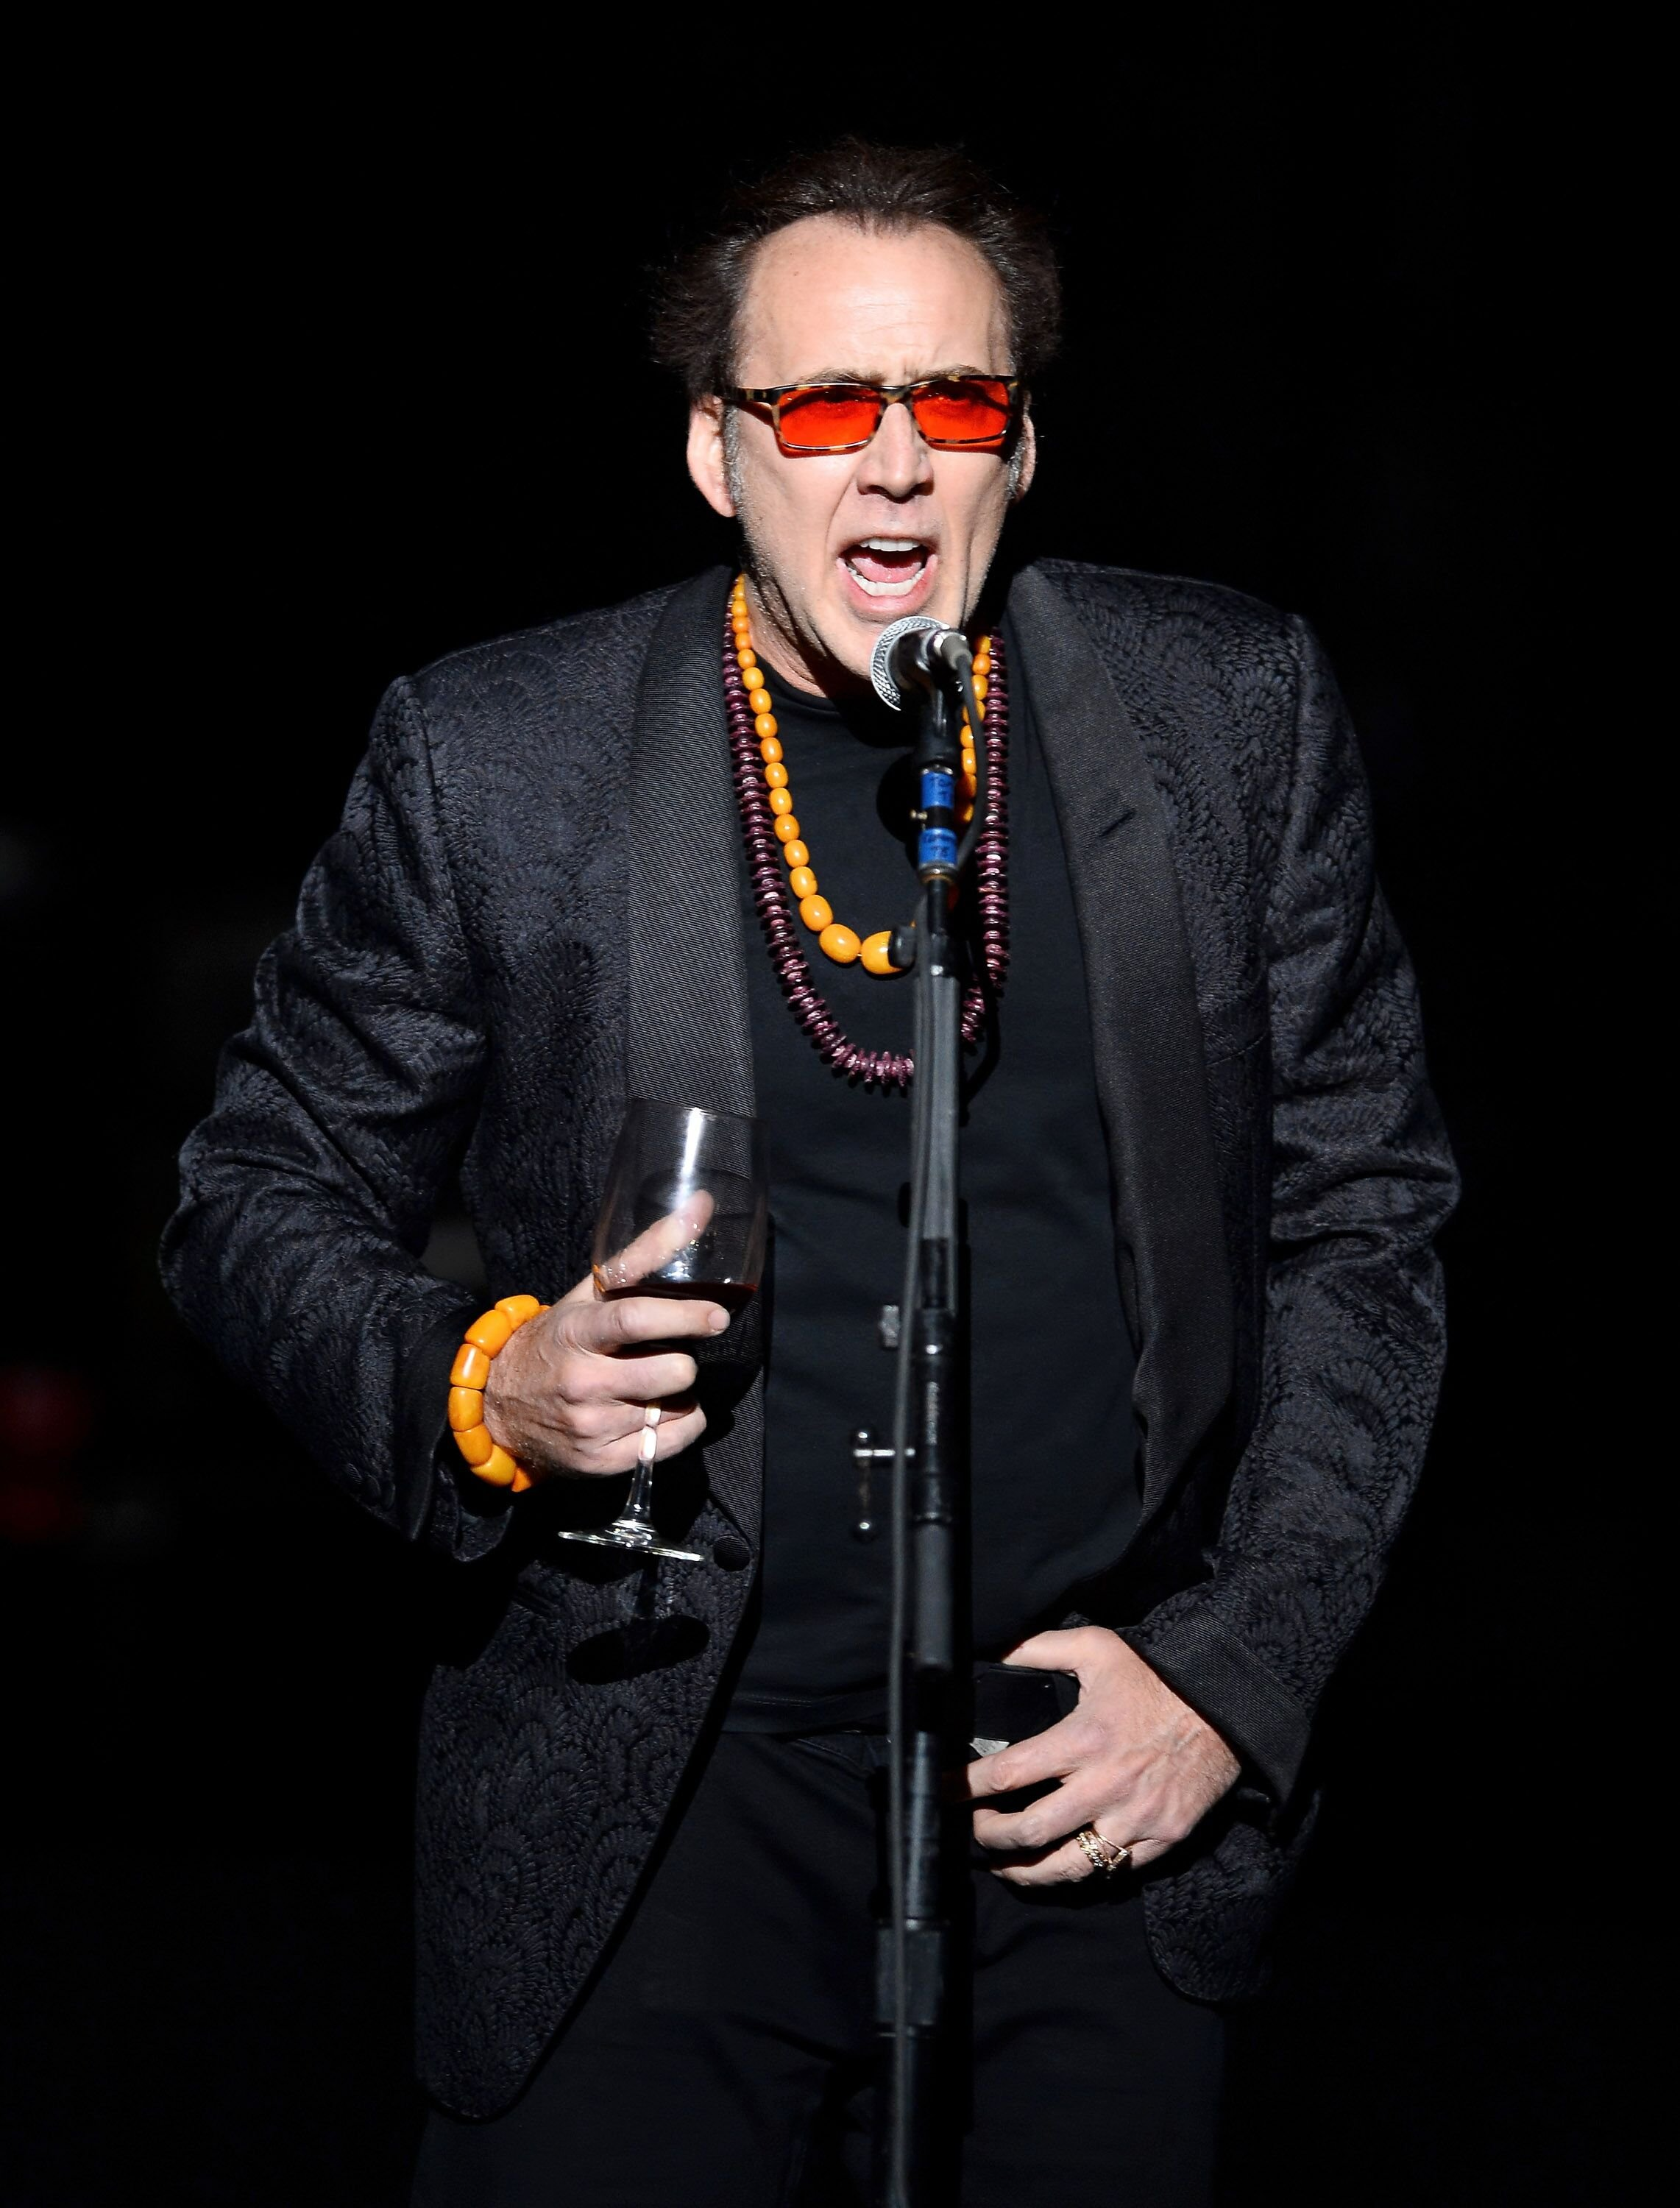 Nicolas Cage introduces Guns N' Roses at The Joint inside the Hard Rock Hotel & Casino during the opening night of the band's second residency. | Source: Getty Images